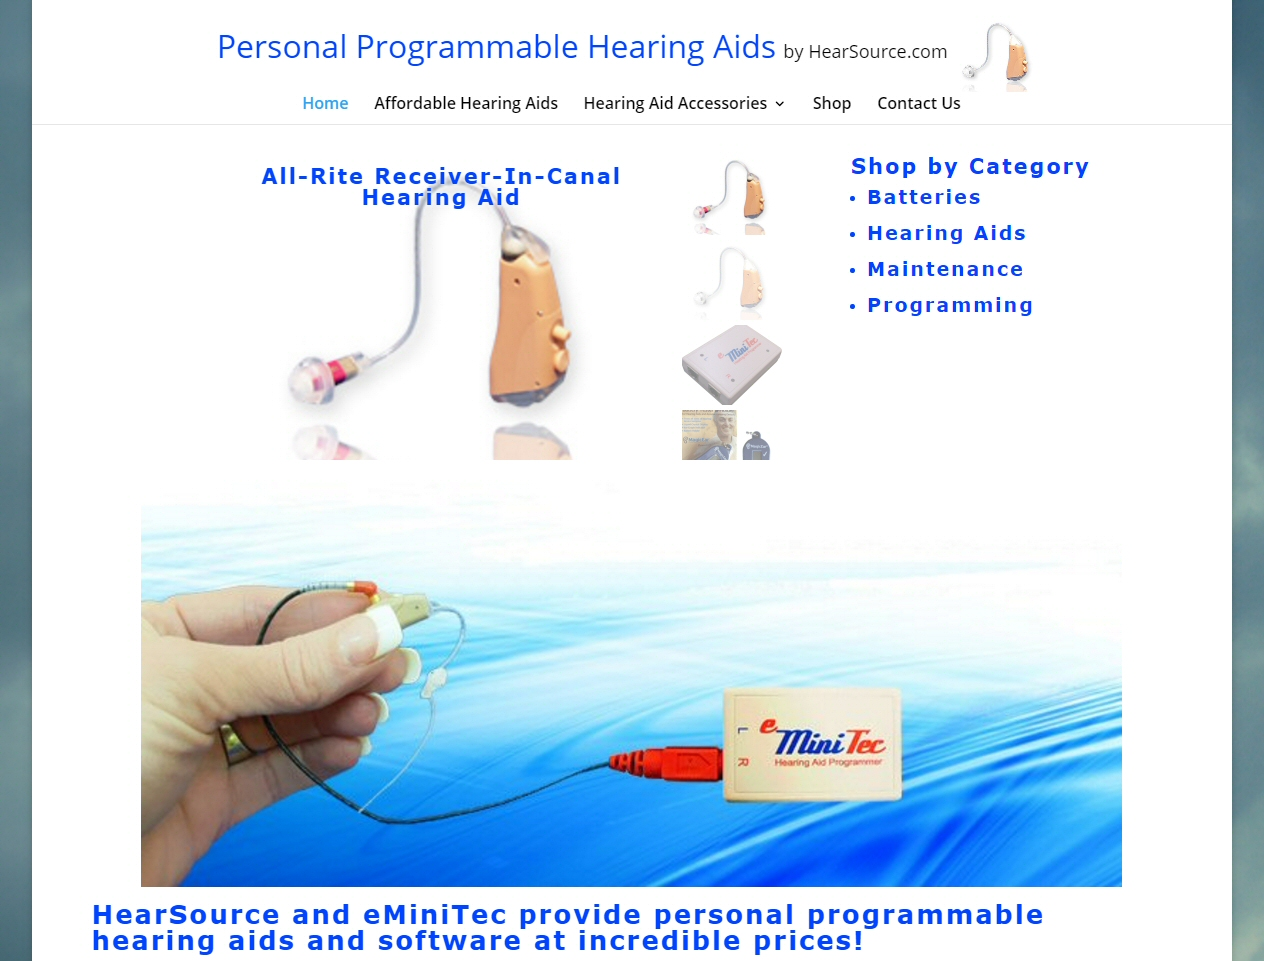 Personal Programmable Hearing Aids by HearSource